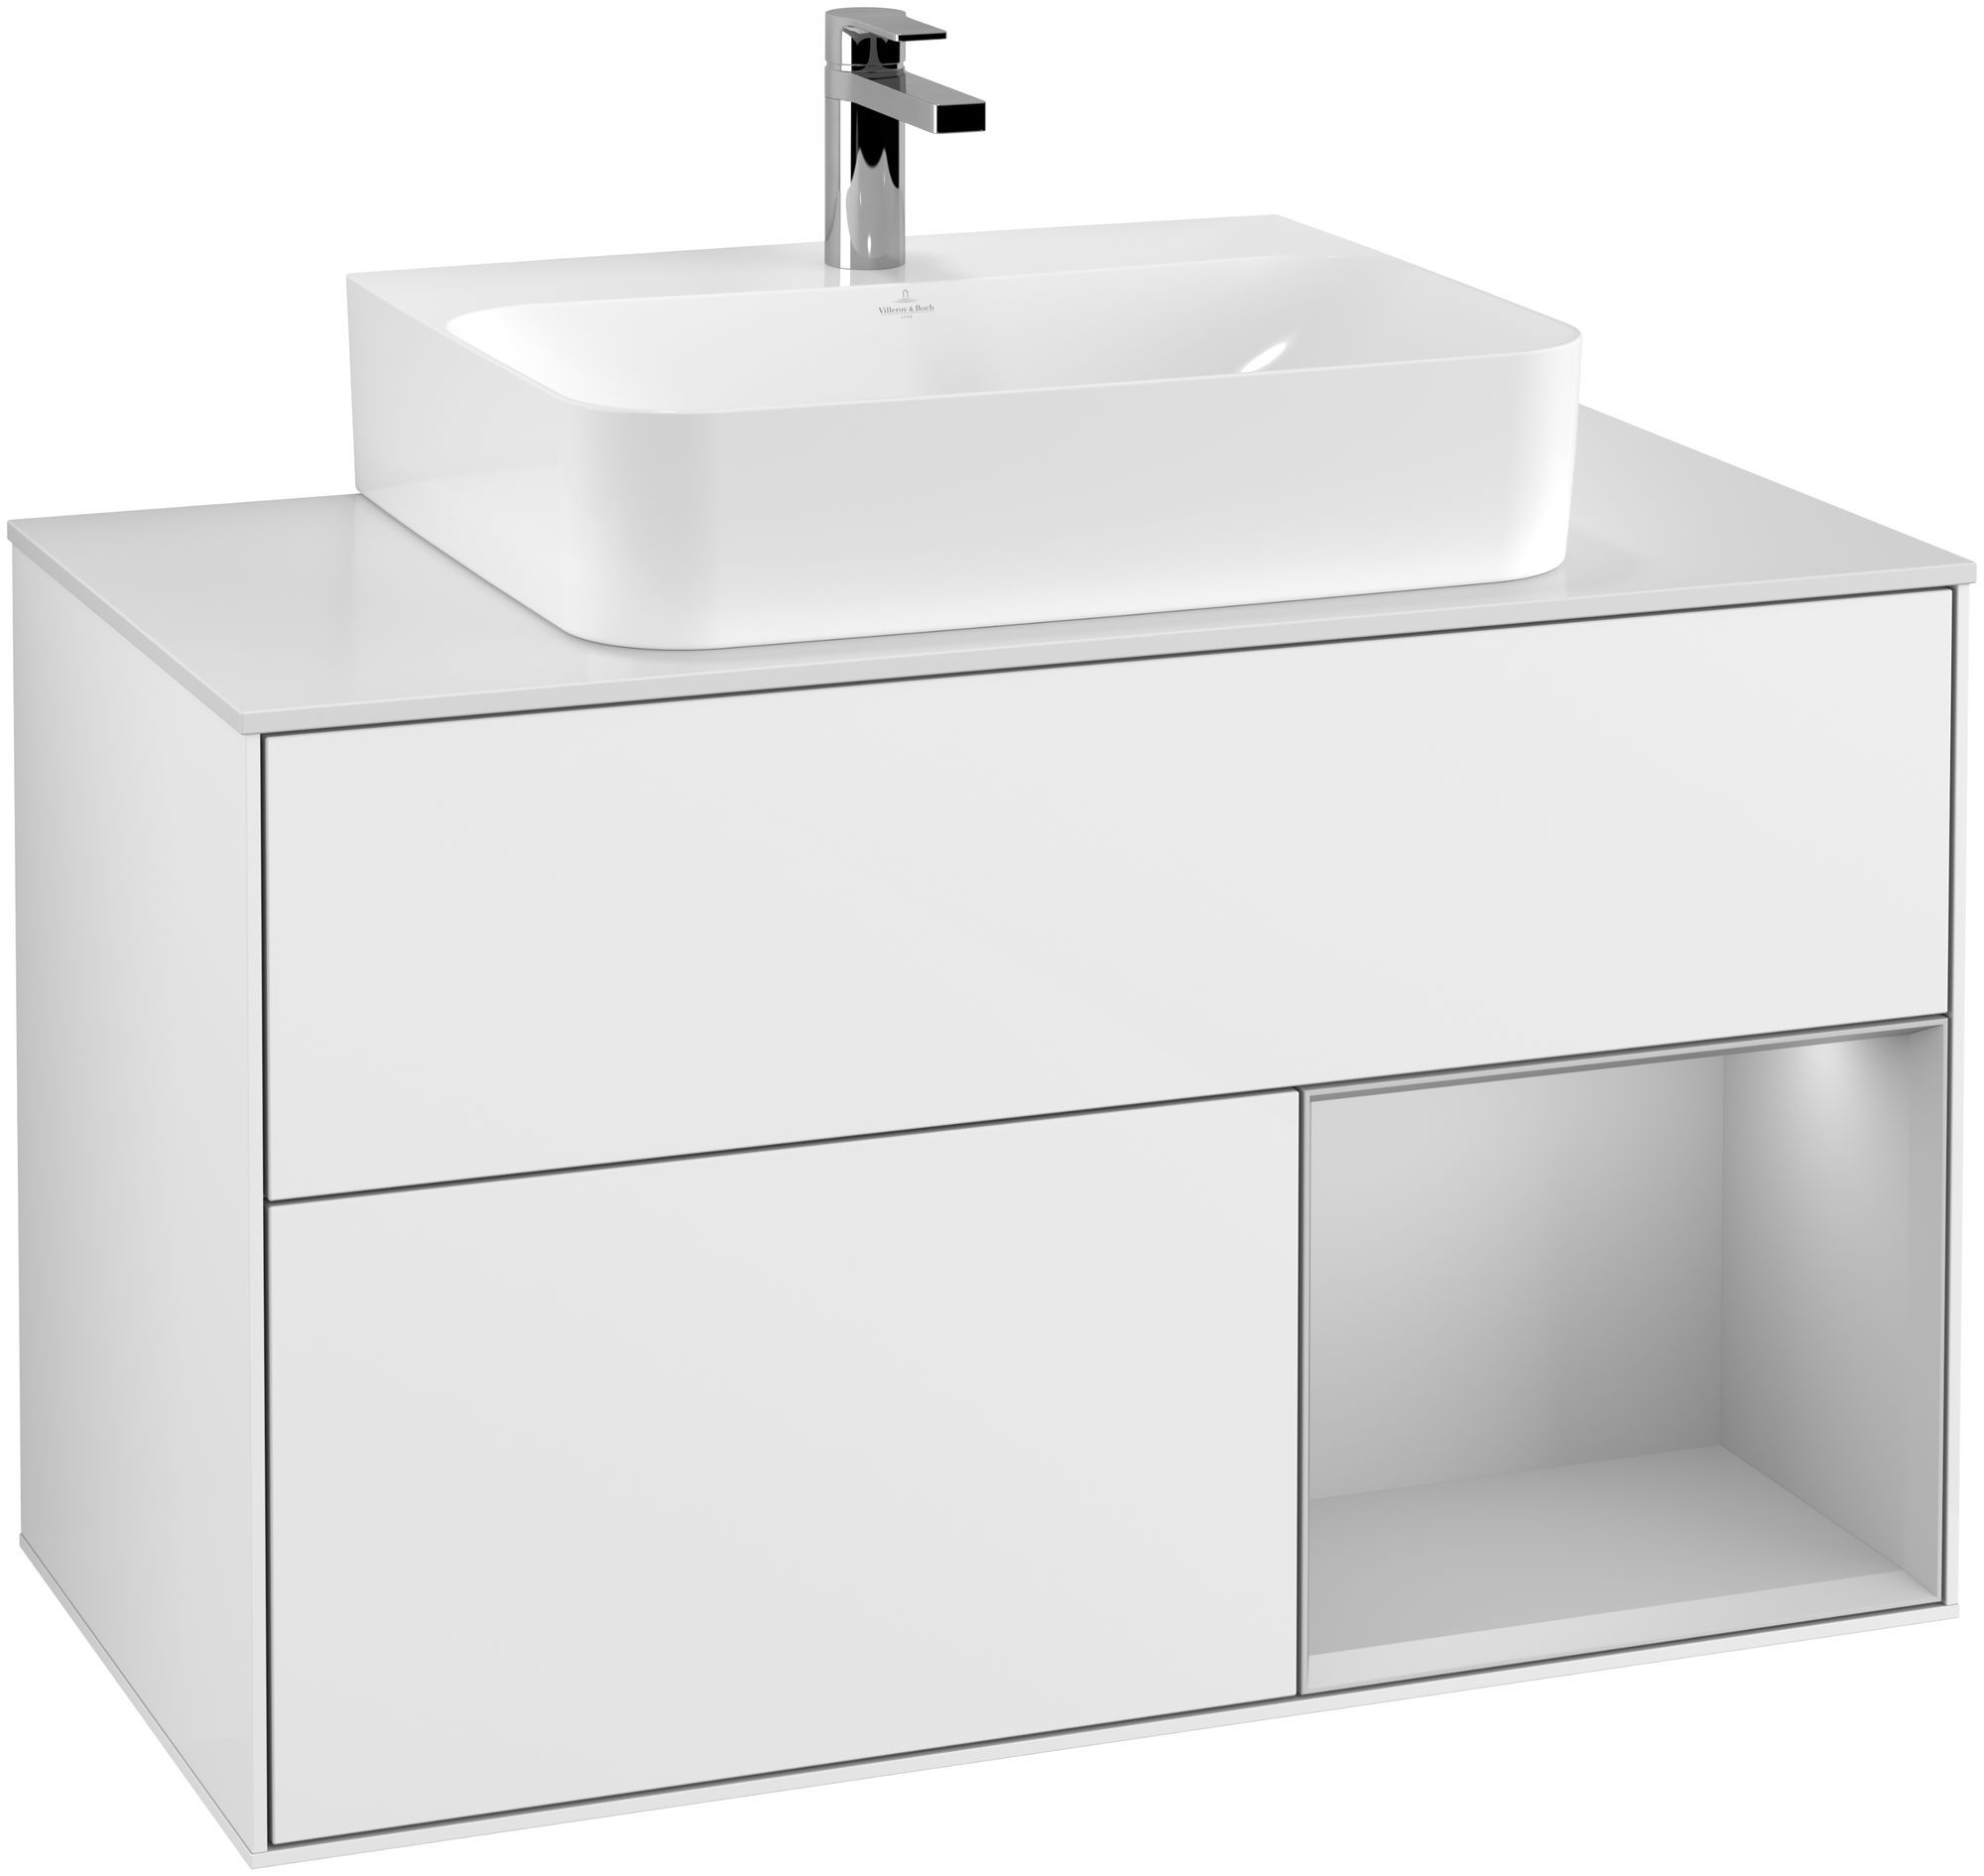 Villeroy & Boch Finion F12 Waschtischunterschrank mit Regalelement 2 Auszüge für WT mittig LED-Beleuchtung B:100xH:60,3xT:50,1cm Front, Korpus: Glossy White Lack, Regal: Light Grey Matt, Glasplatte: White Matt F121GJGF